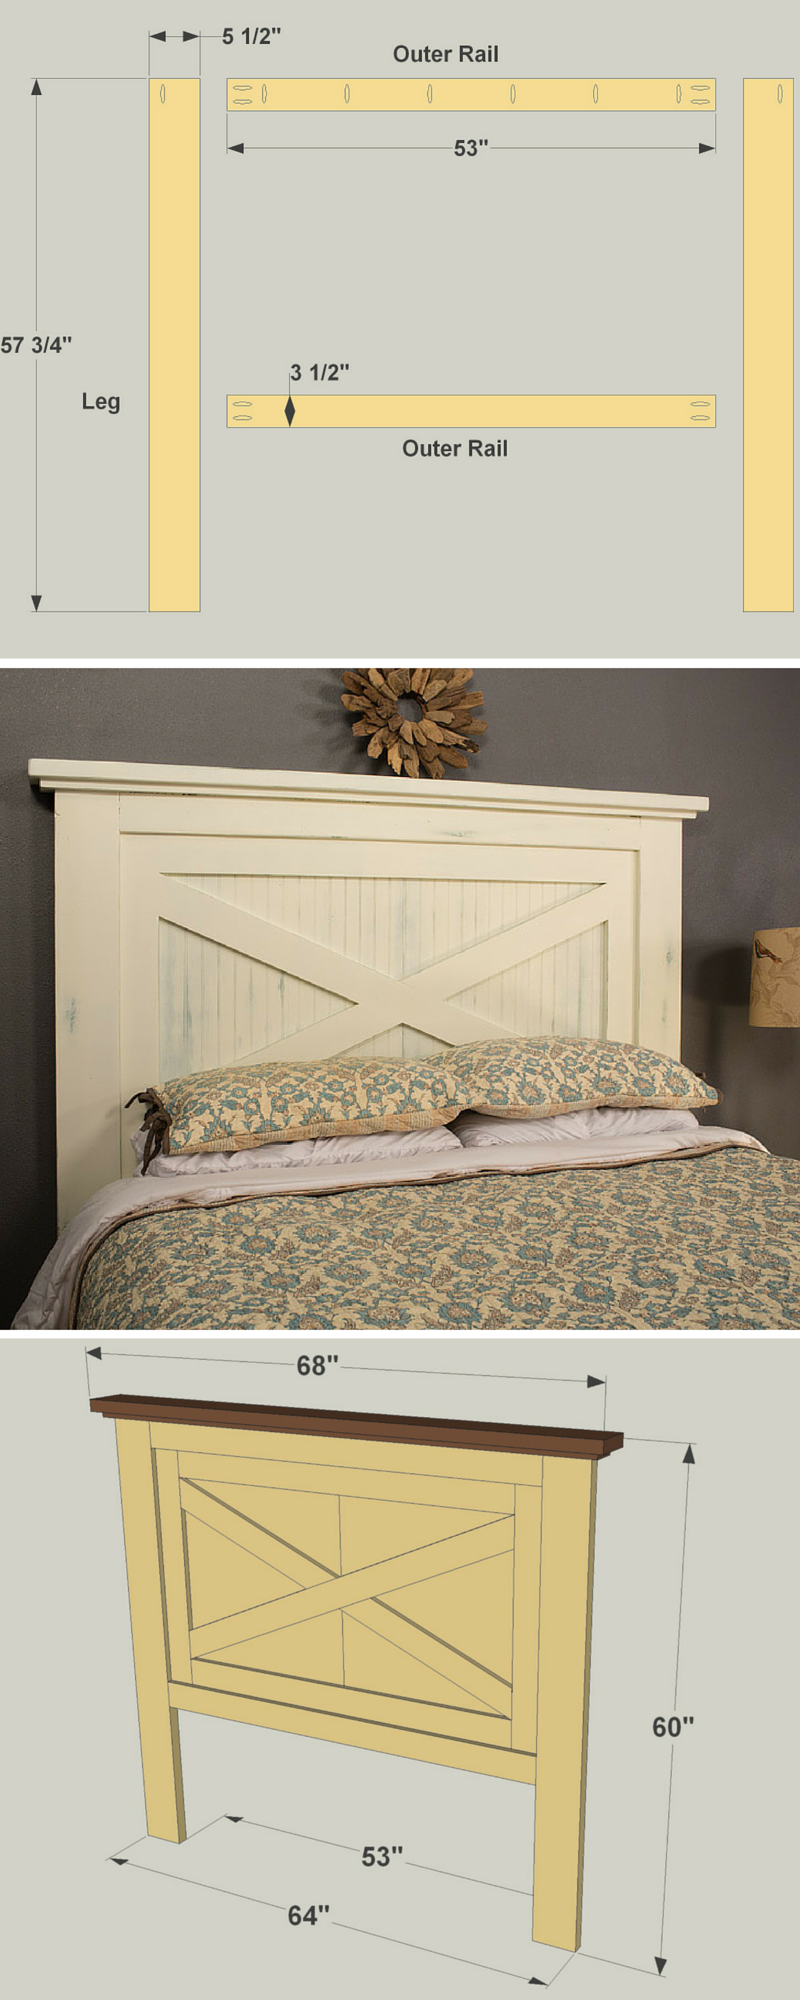 With its countrycasual style, this headboard can blend